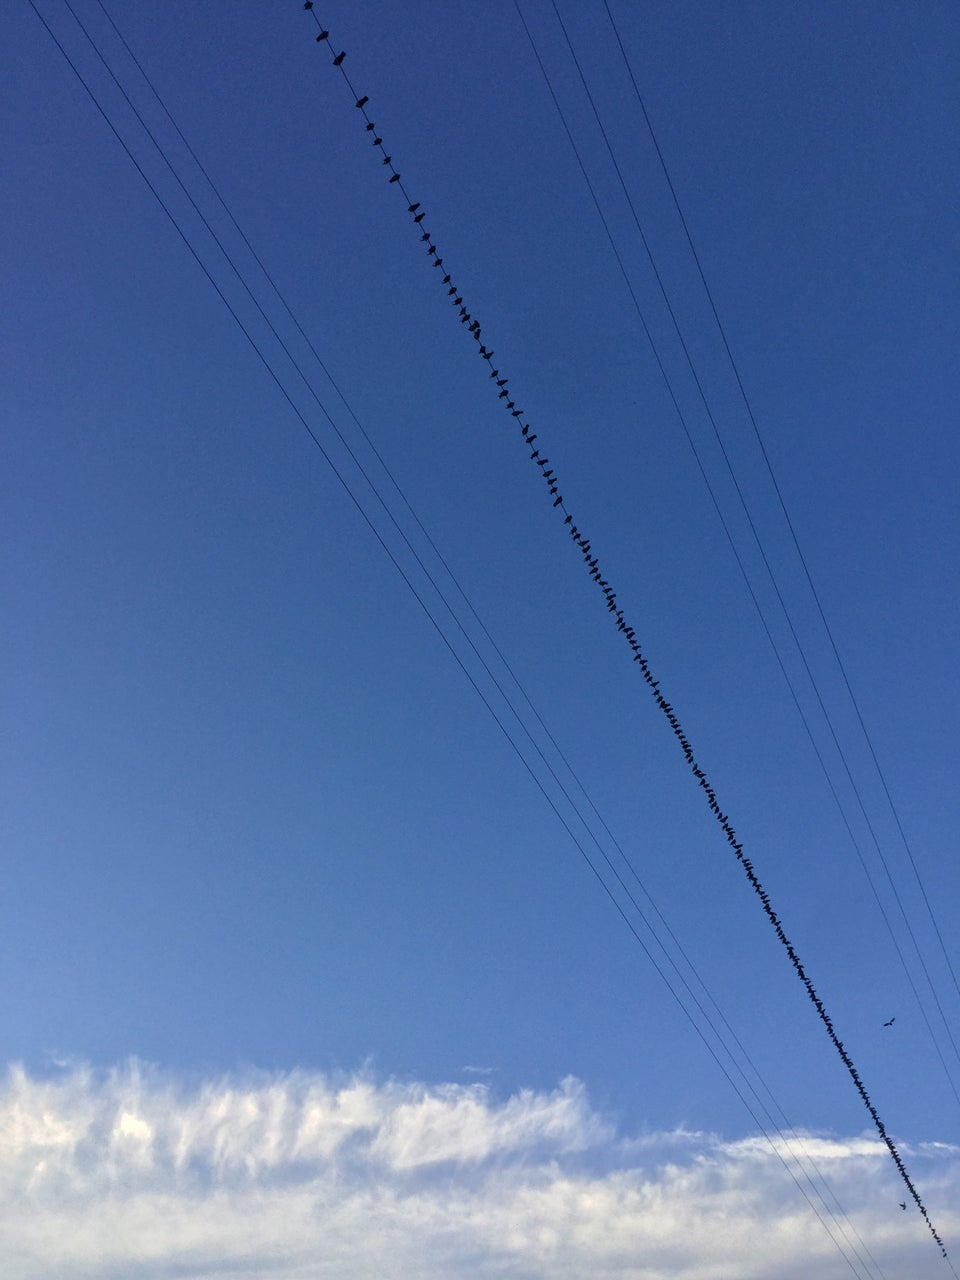 Hundreds of birds perched on a single wire among several wires overhead with a blue sky above them and clouds on the horizon.